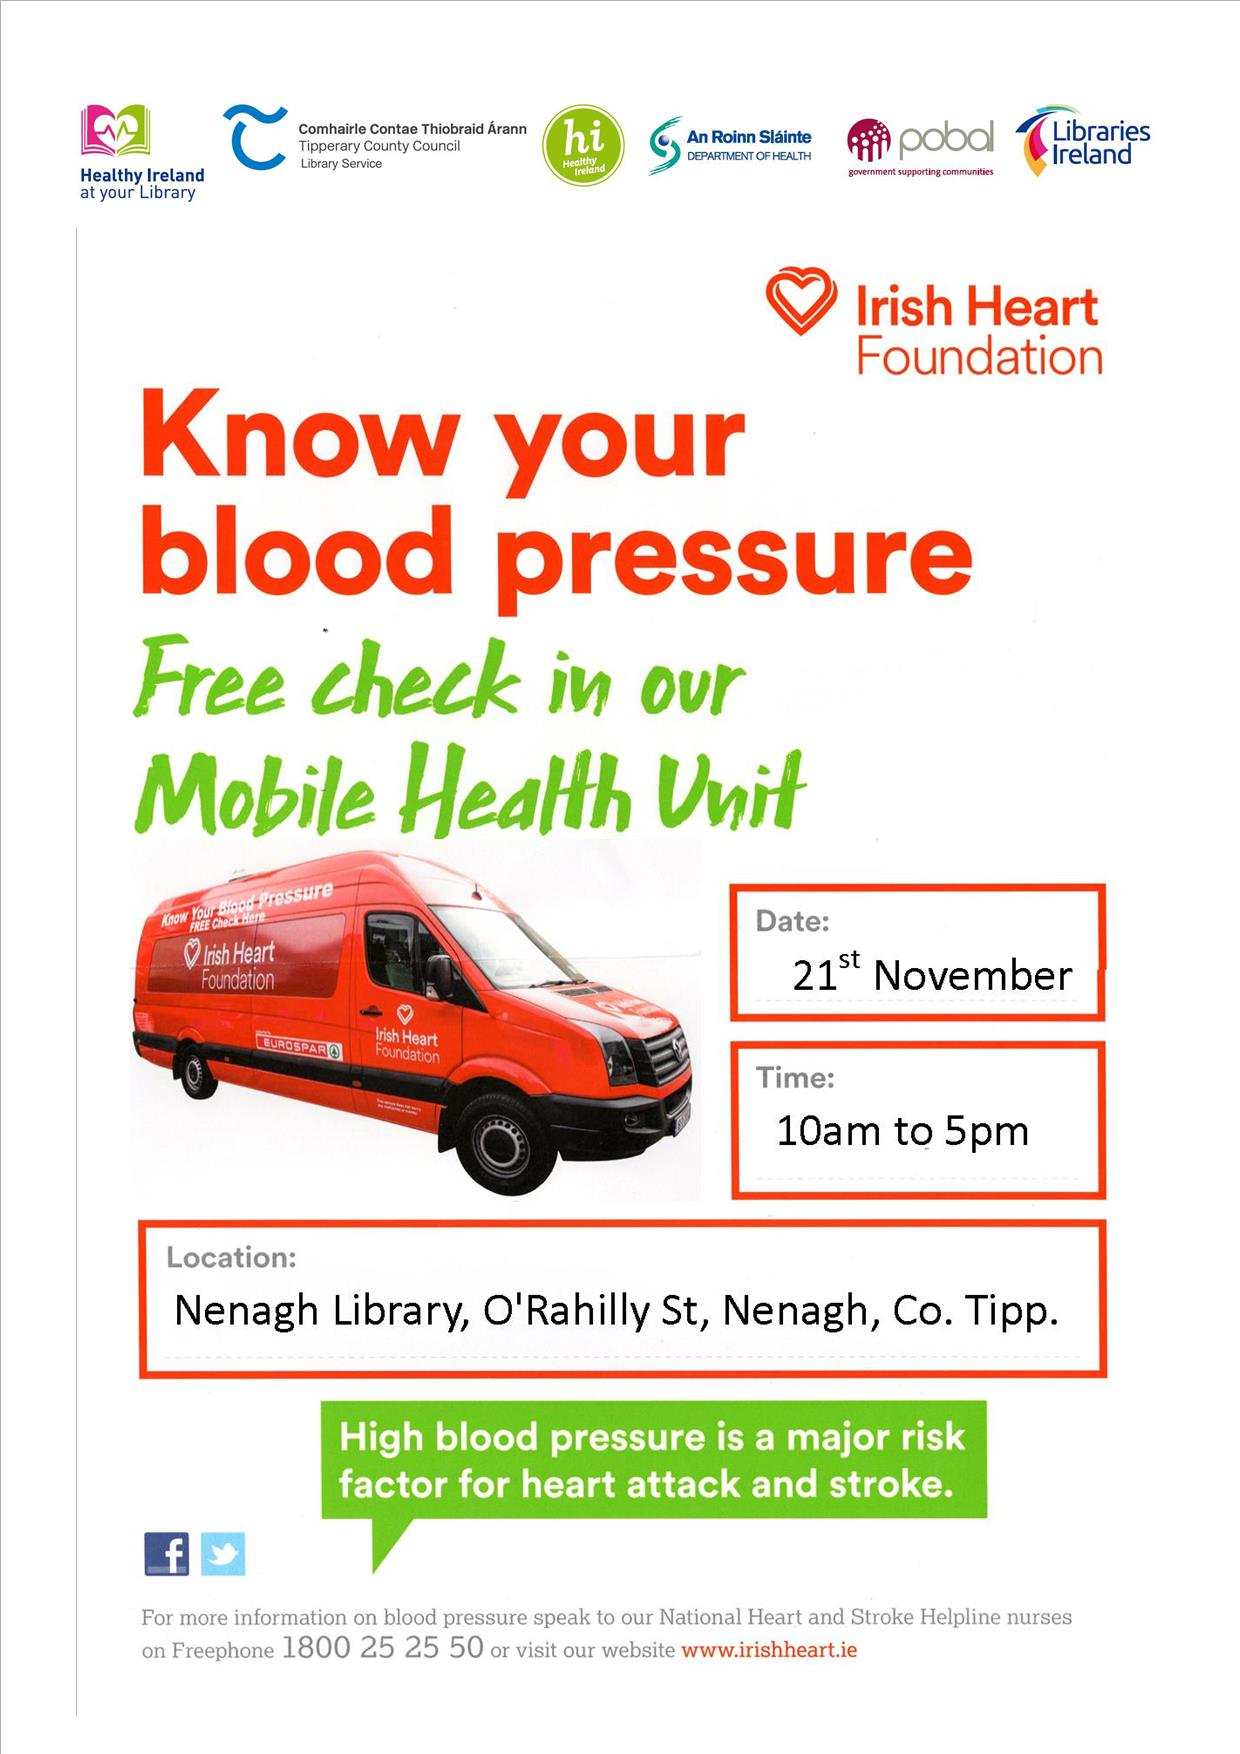 Free Blood Pressure Check: Nenagh Library